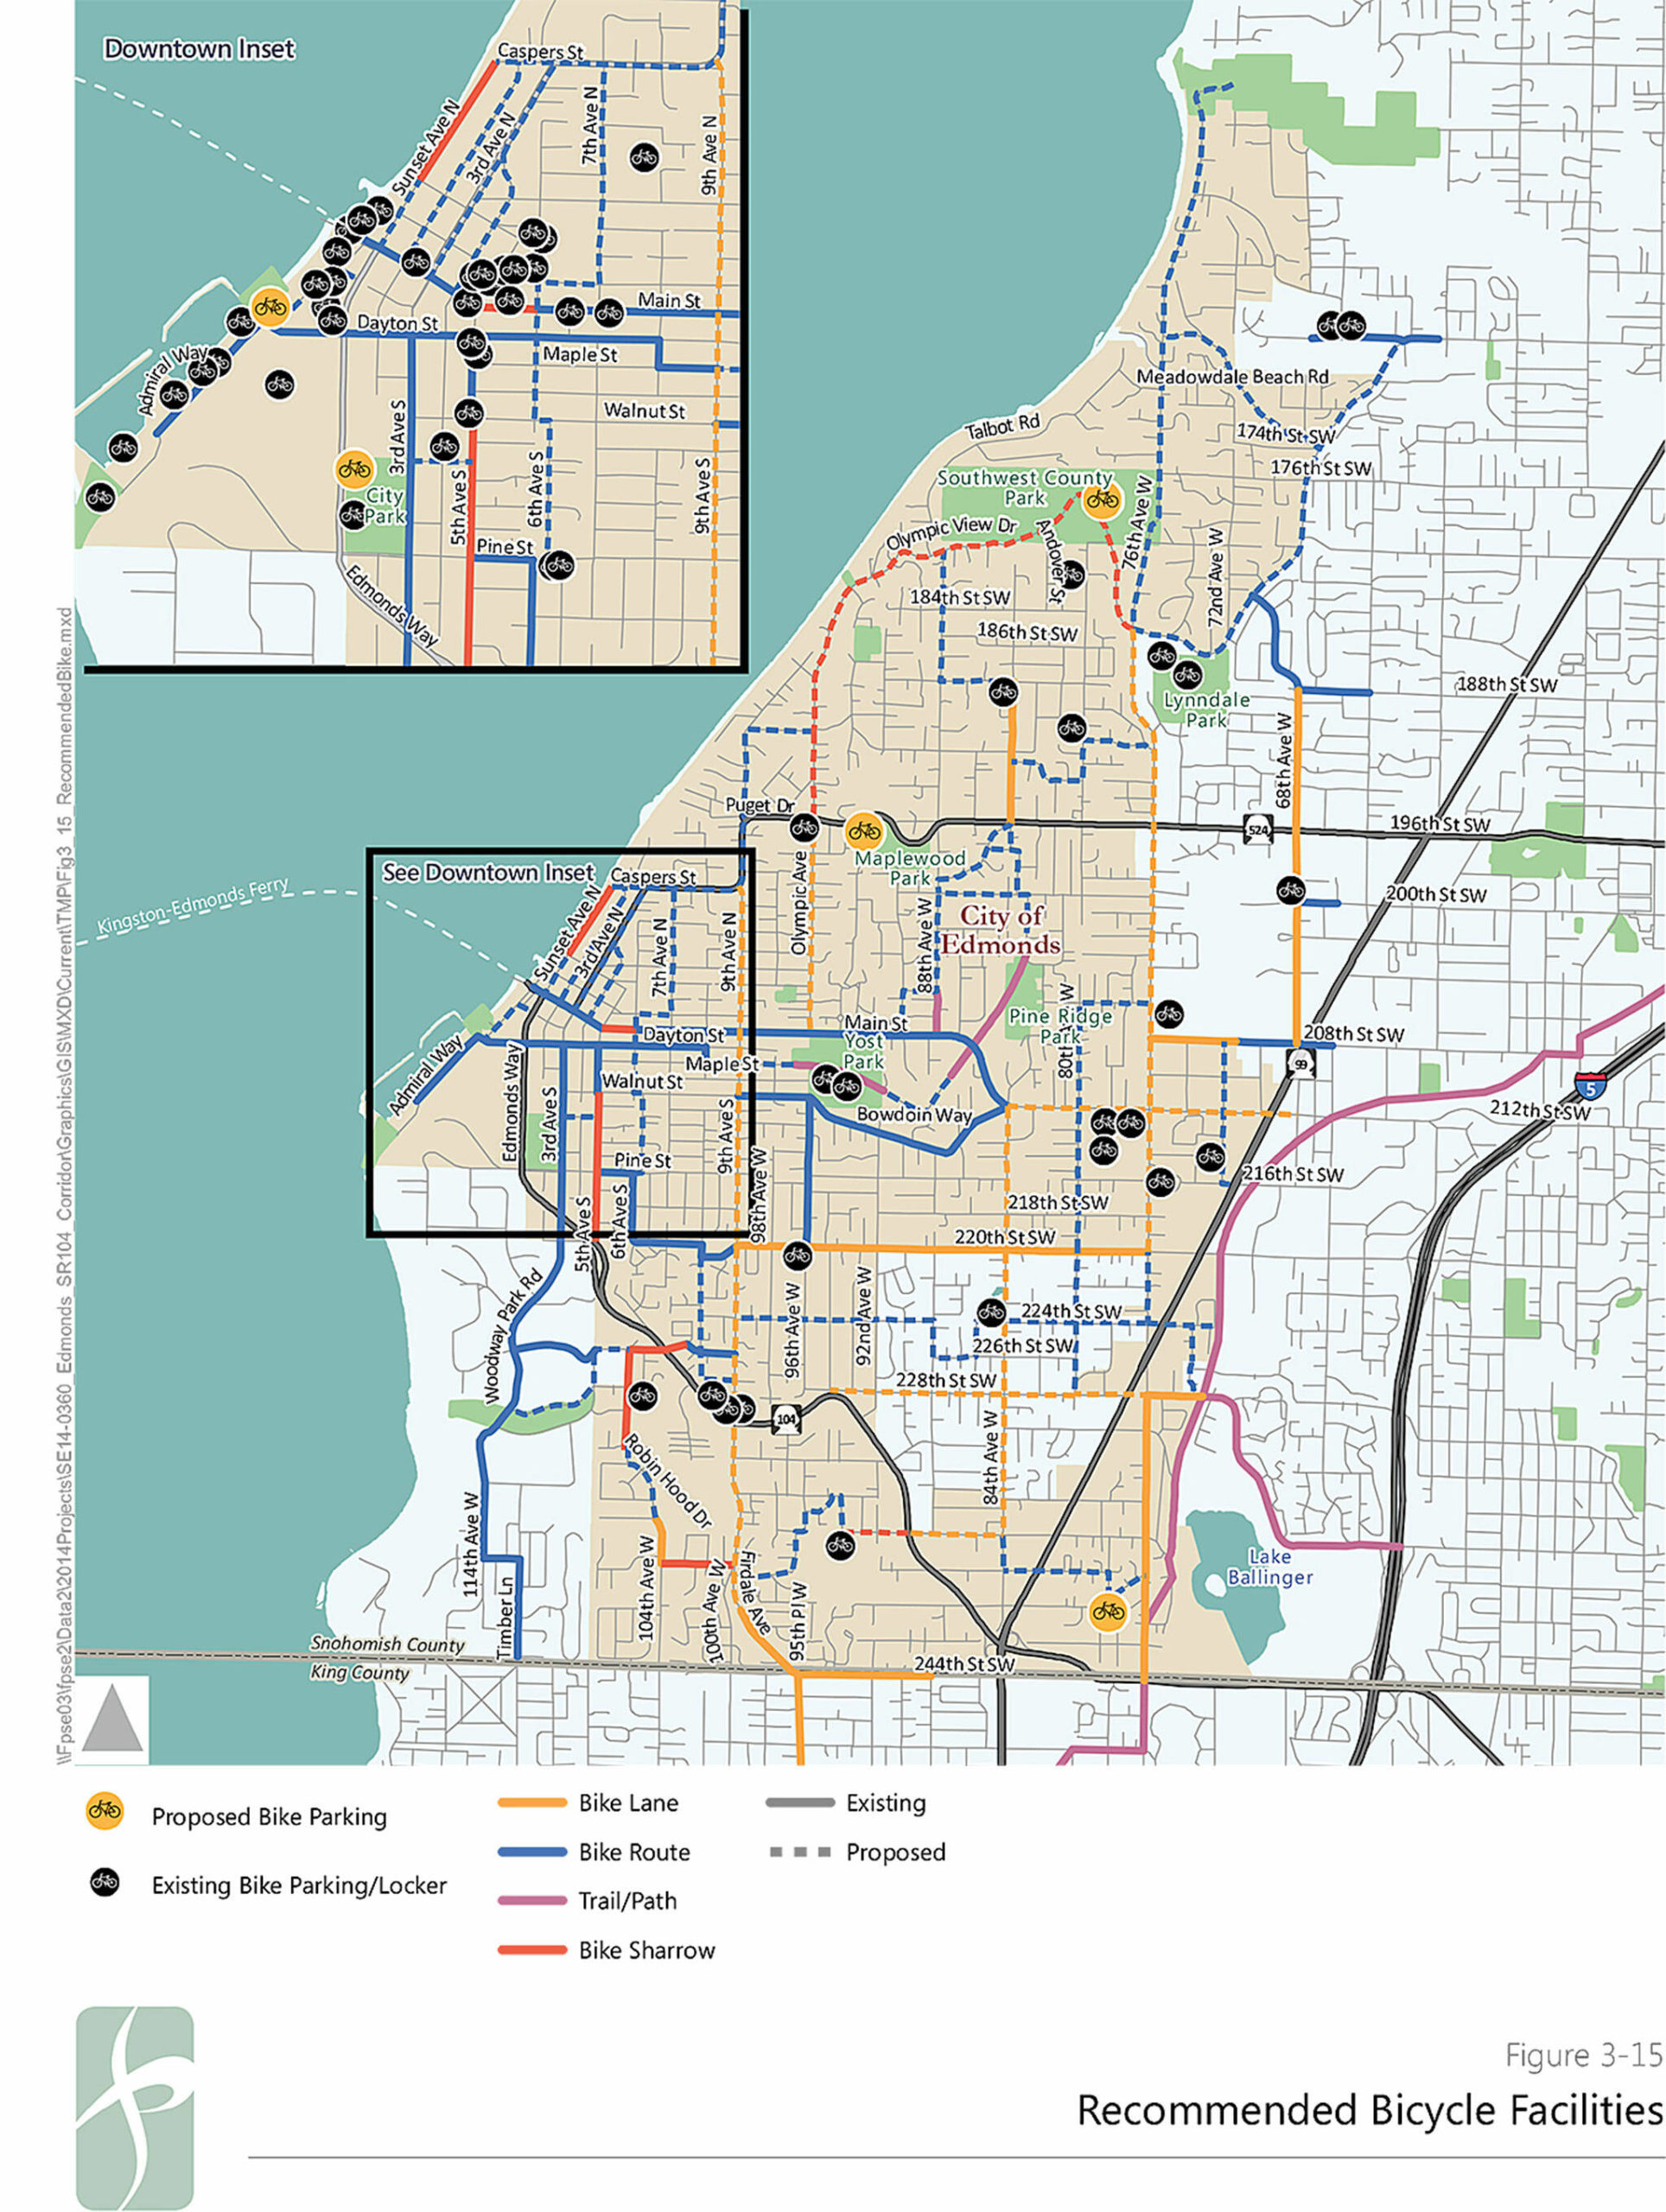 The proposed bike plan for Edmonds includes a project to build bike lanes on 100th Avenue W/Ninth Avenue W, between 244th Street SW and Walnut Street. (City of Edmonds)